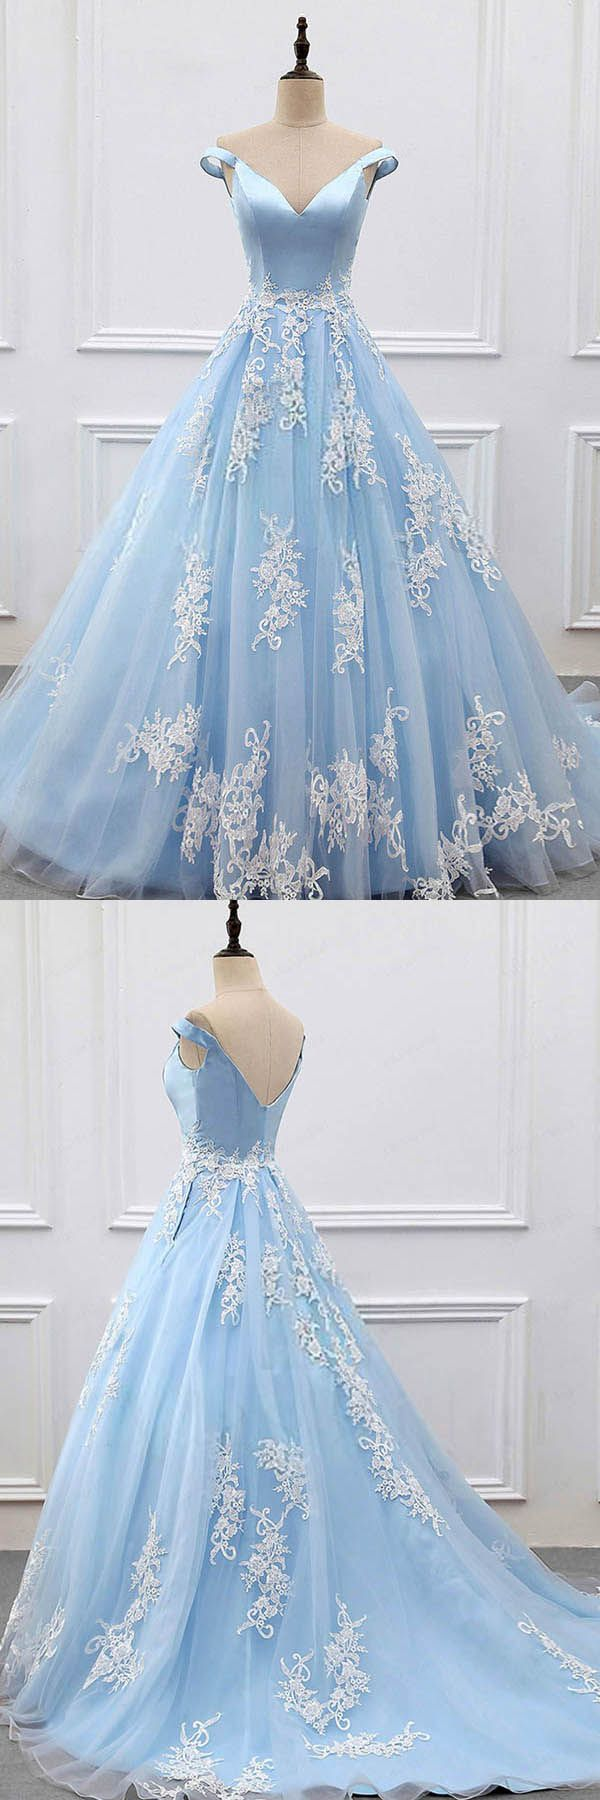 Ball gown offtheshoulder court train blue tulle prom dress pg